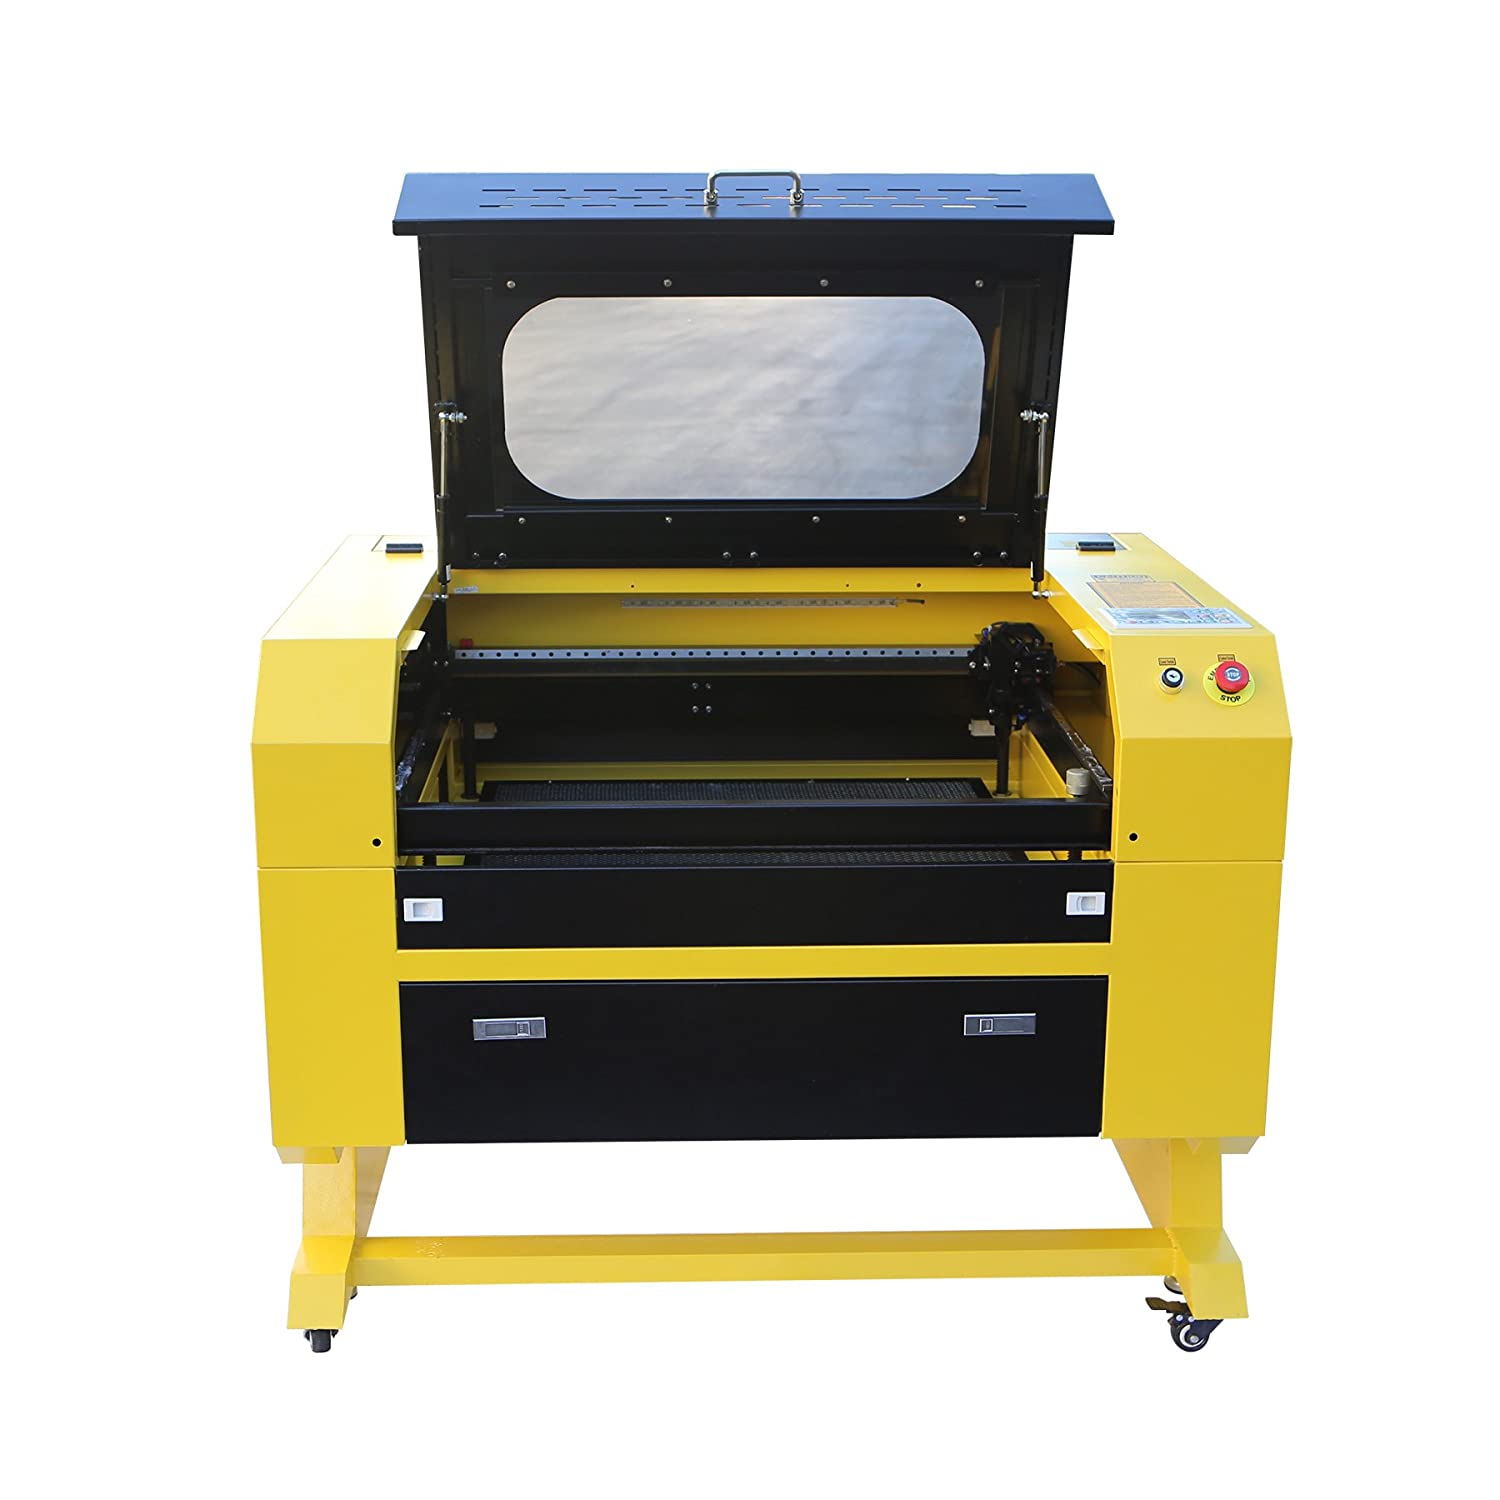 Orion Motor Tech 60W CO2 Laser Cutter Engraver, 110V DIY Laser Cutting  Engraving Machine with DSP Control System and USB Interface(20 x 28 Inches